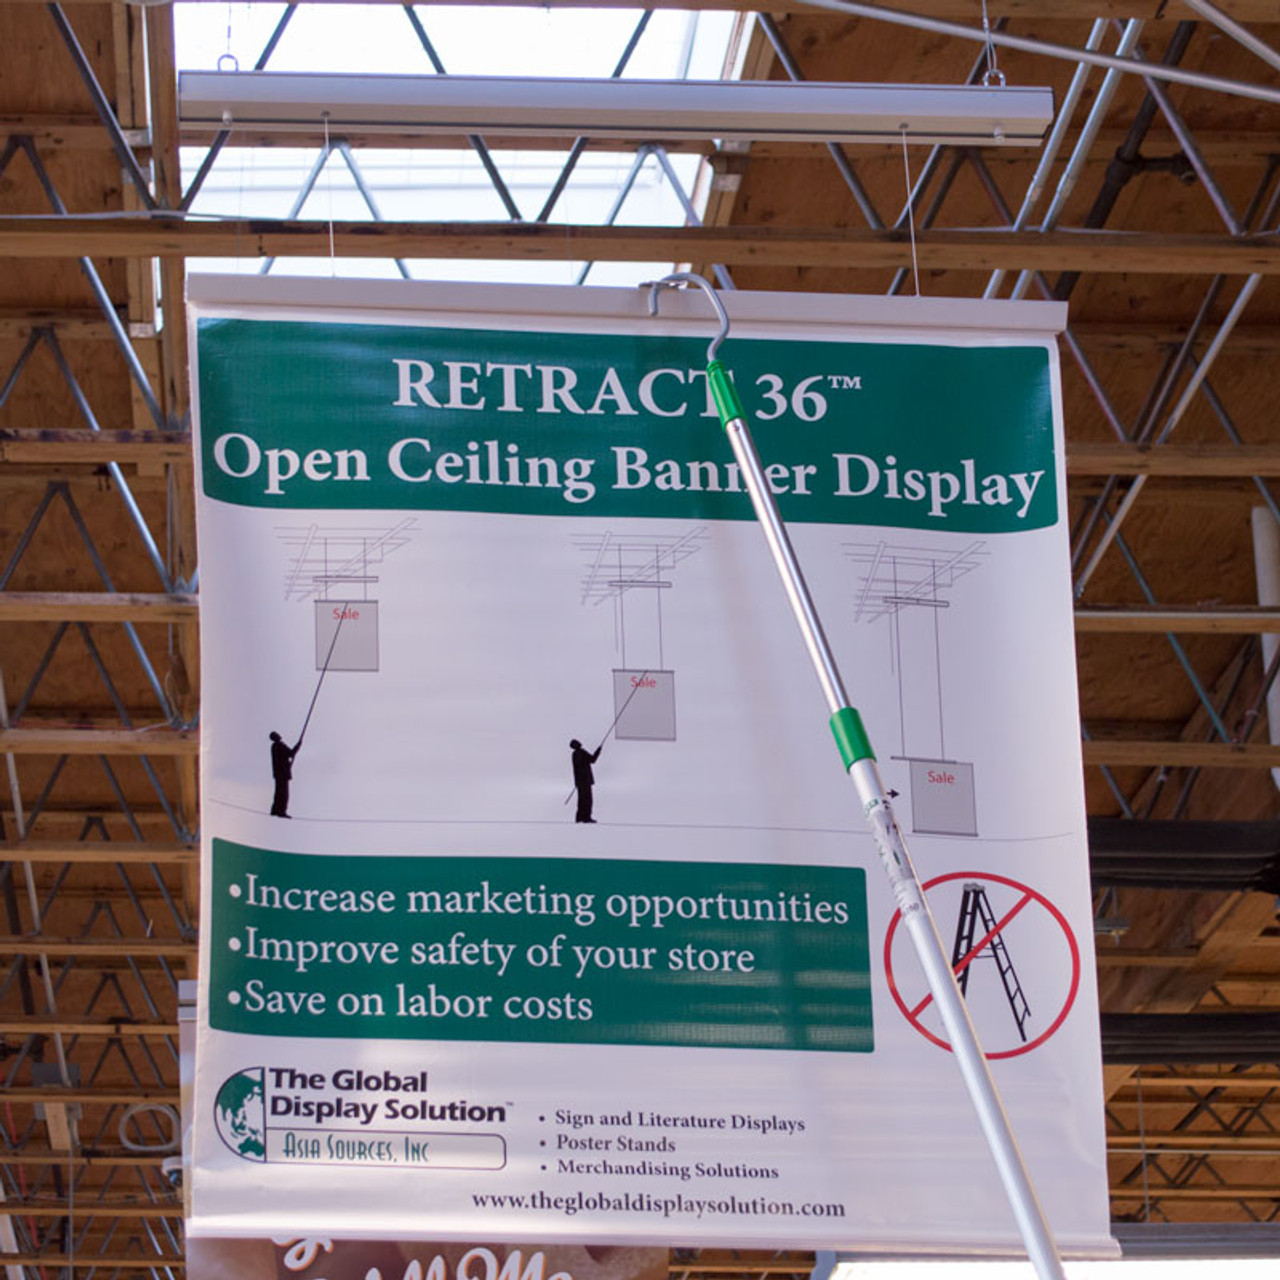 Eliminate dangerous ladders at your workplace by using the ladder-free banner system which retracts and lowers.